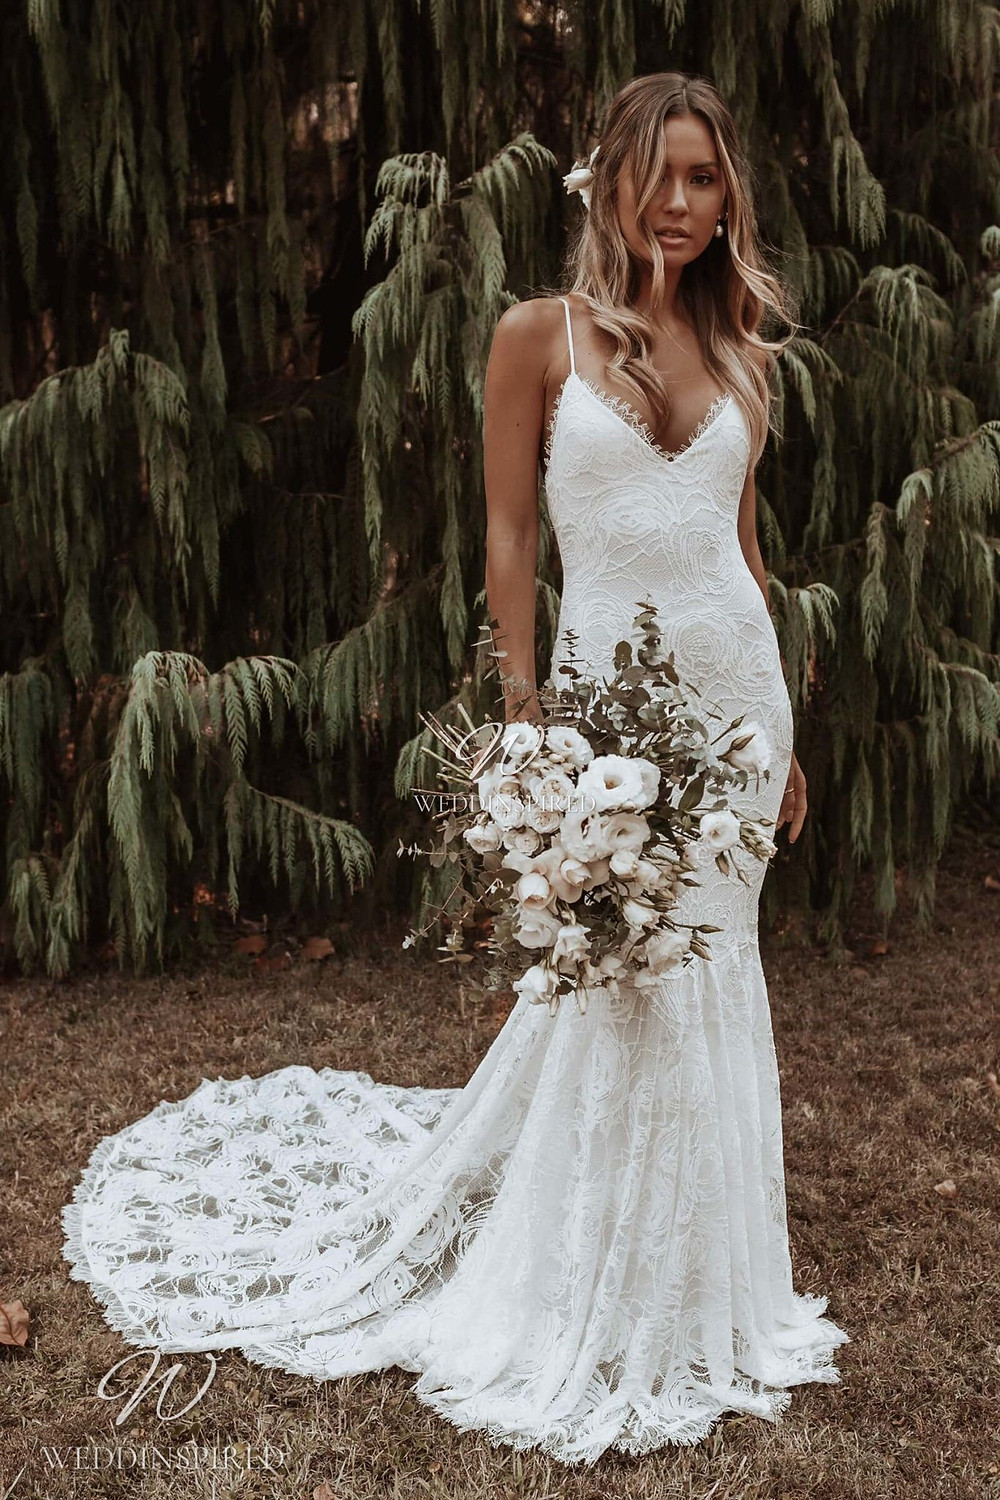 A Grace Loves Lace mermaid lace wedding dress with a train, thin spaghetti straps and a v neck